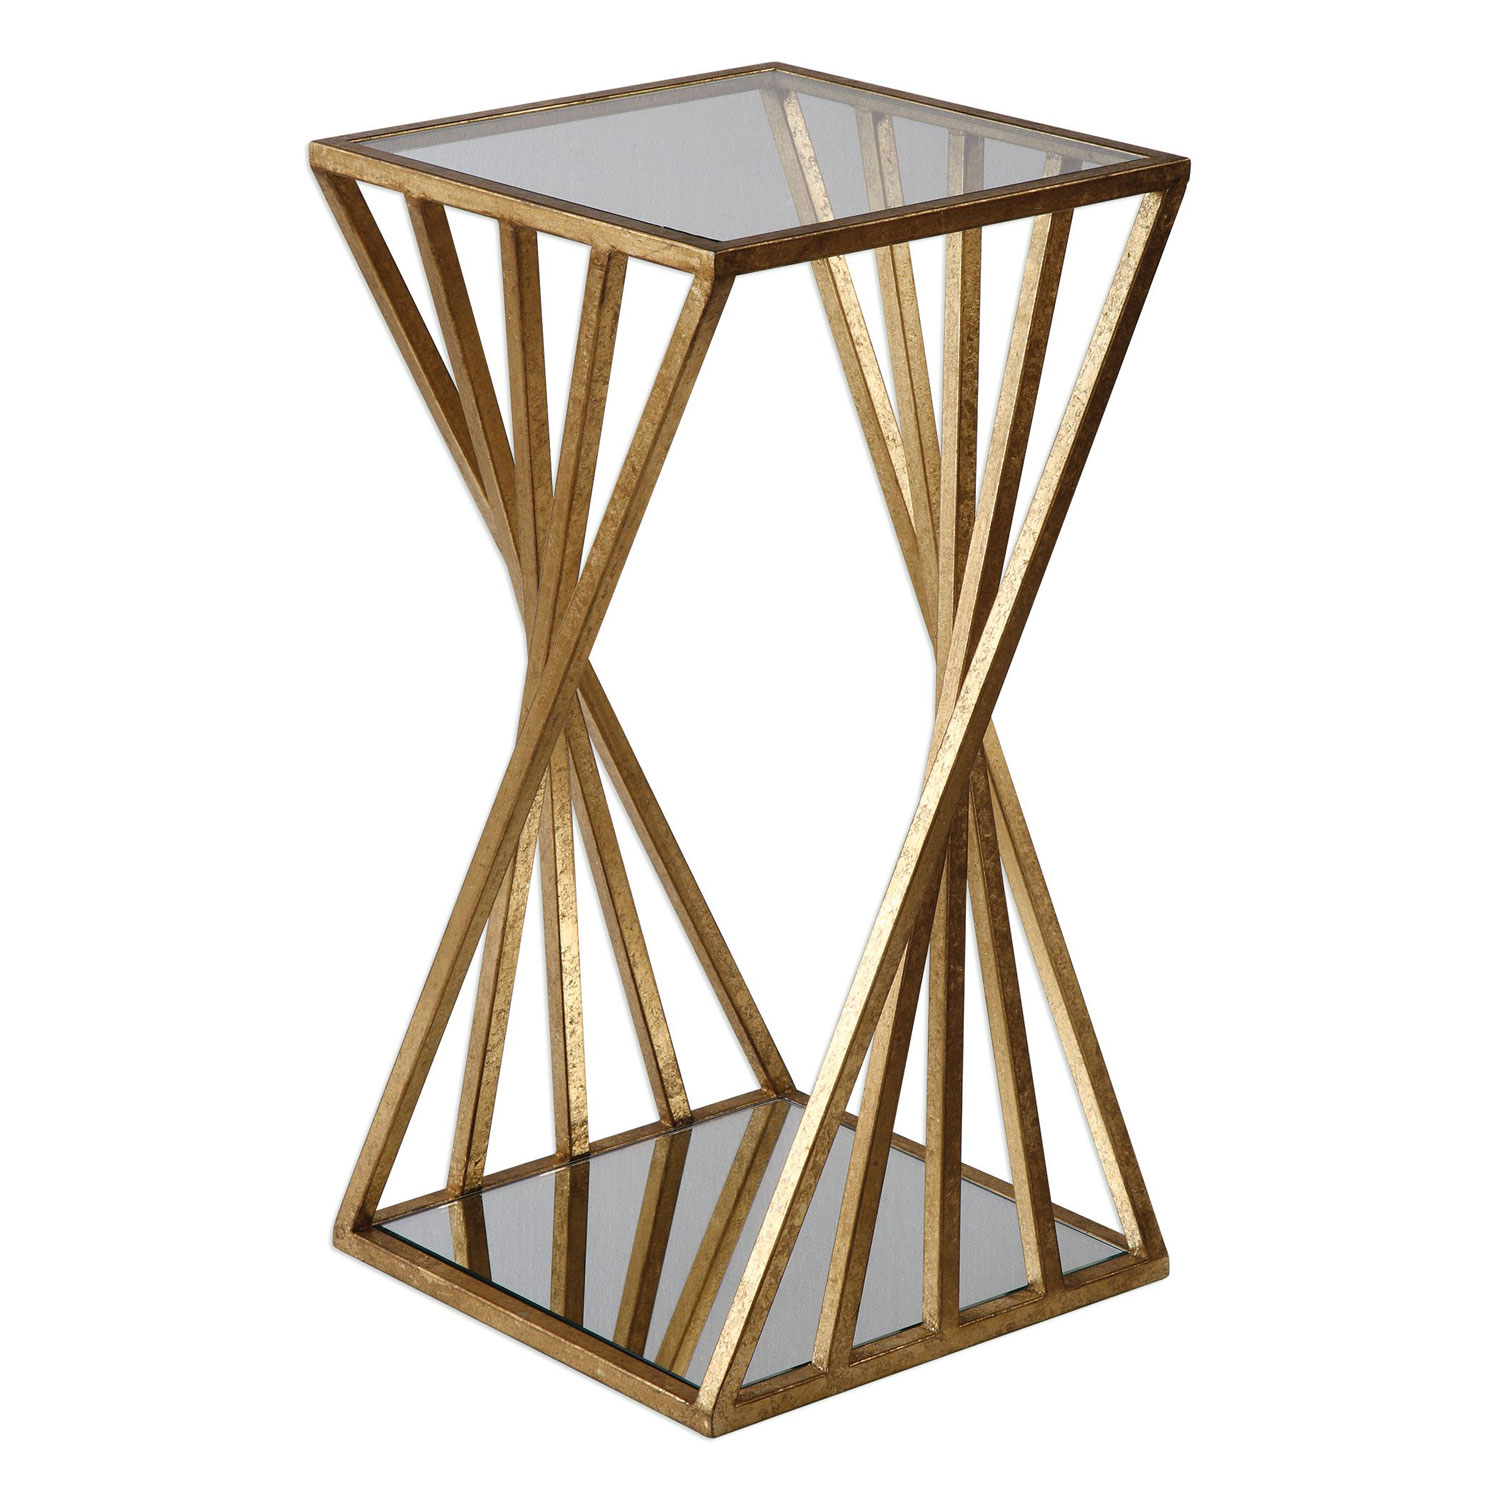 uttermost janina gold dimensional accent table bellacor laton mirrored hover zoom silver trunk coffee entryway metal hairpin legs small glass lamp antique side occasional tables